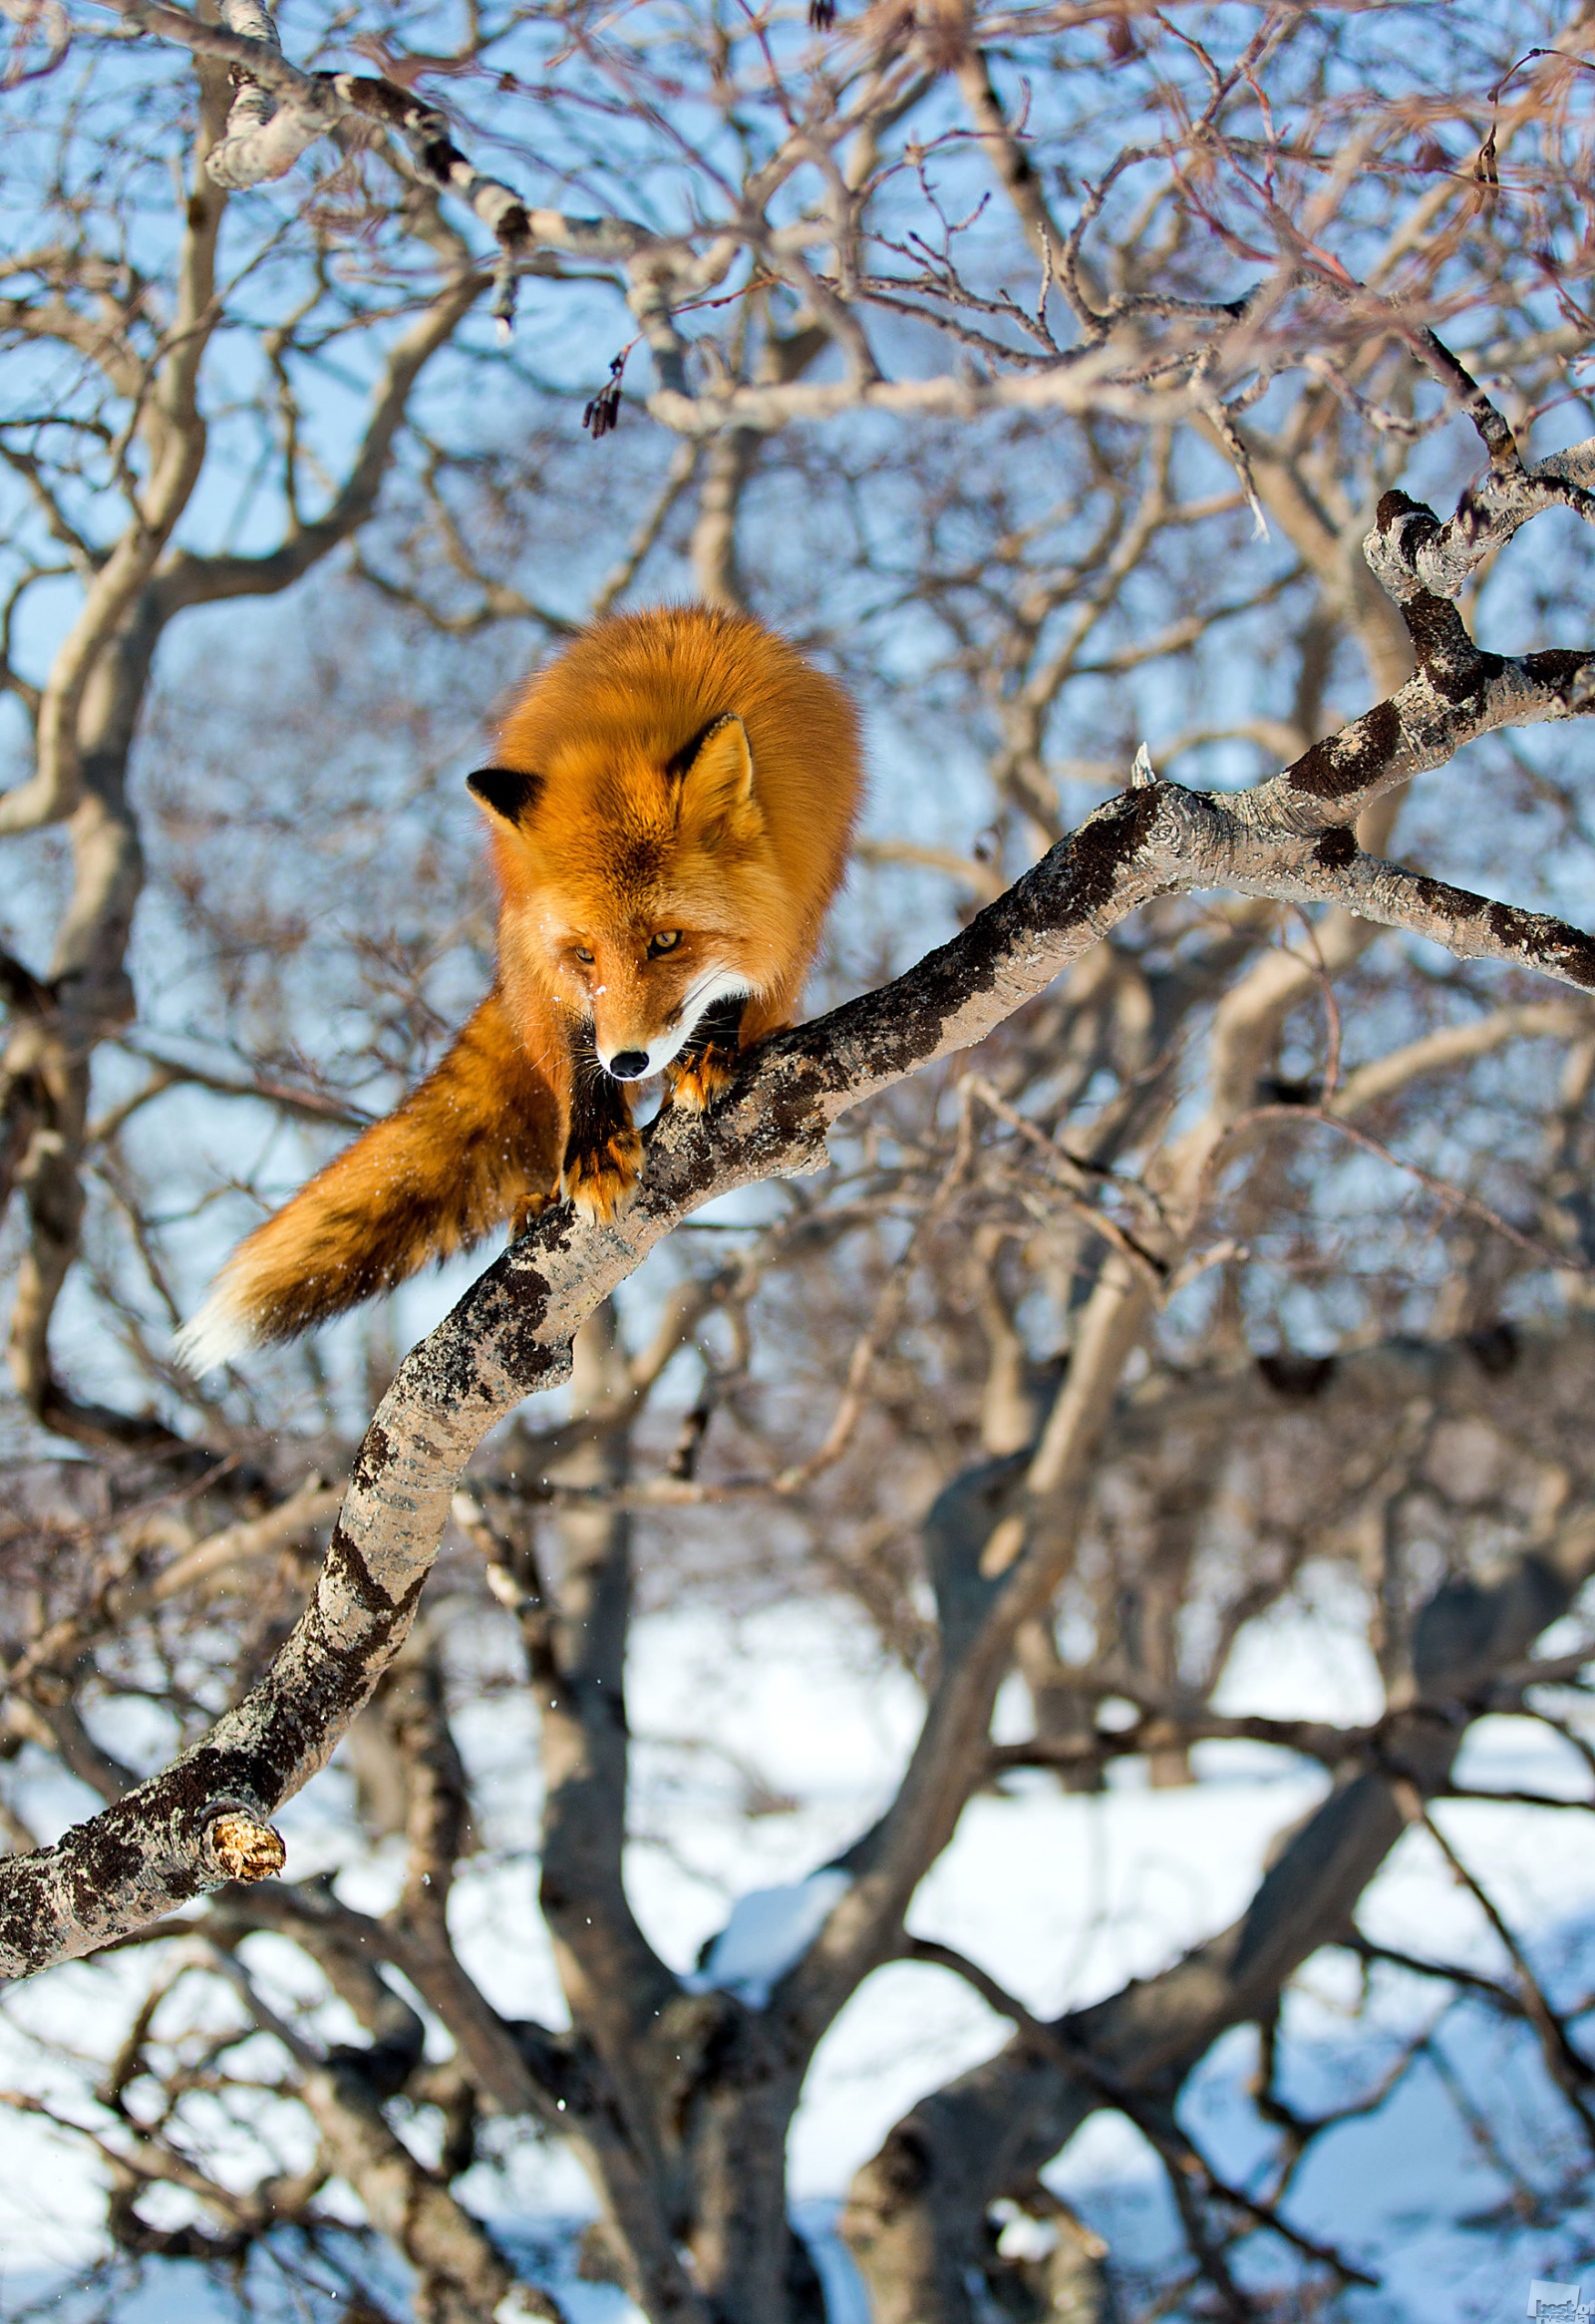 The Kronotsky Nature Reserve, March 2013. It seems that foxes can climb trees, especially if the tree is leaning slightly or its branches aren't too high off the ground. Judging by the way this fox leaps from branch to branch, this activity must be very familiar to it. Kronotsky Nature Reserve, Kamchatka Krai